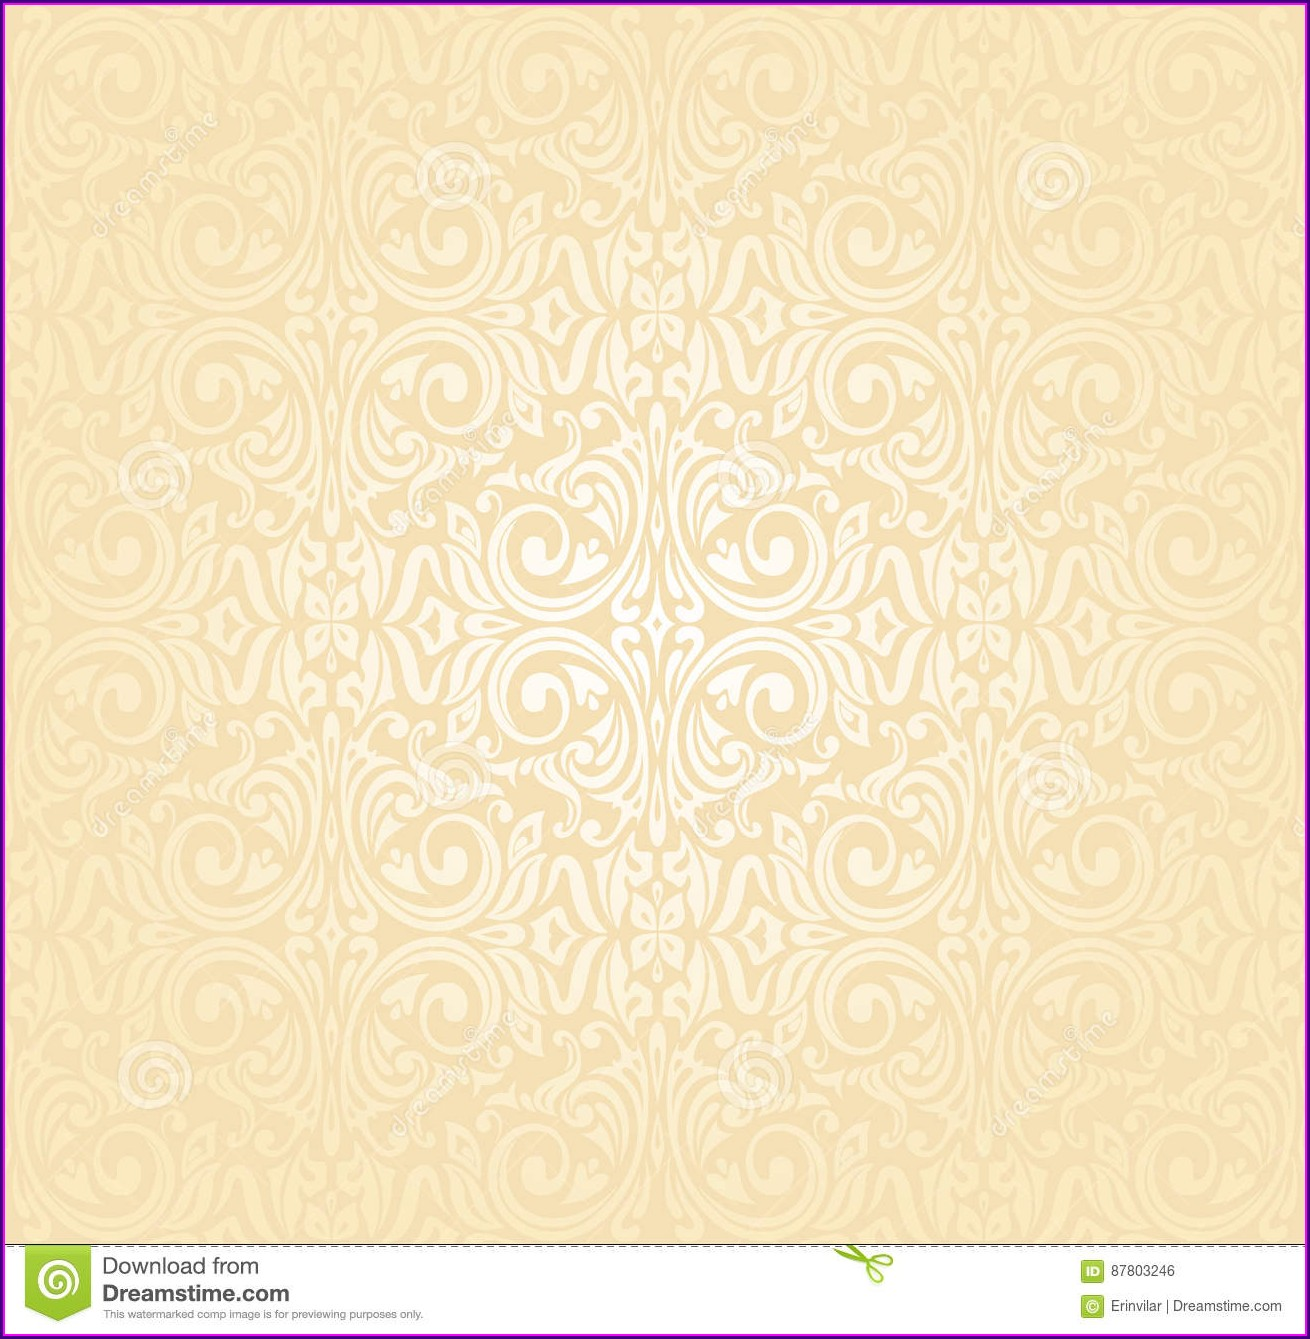 Design Vector Wedding Invitation Background